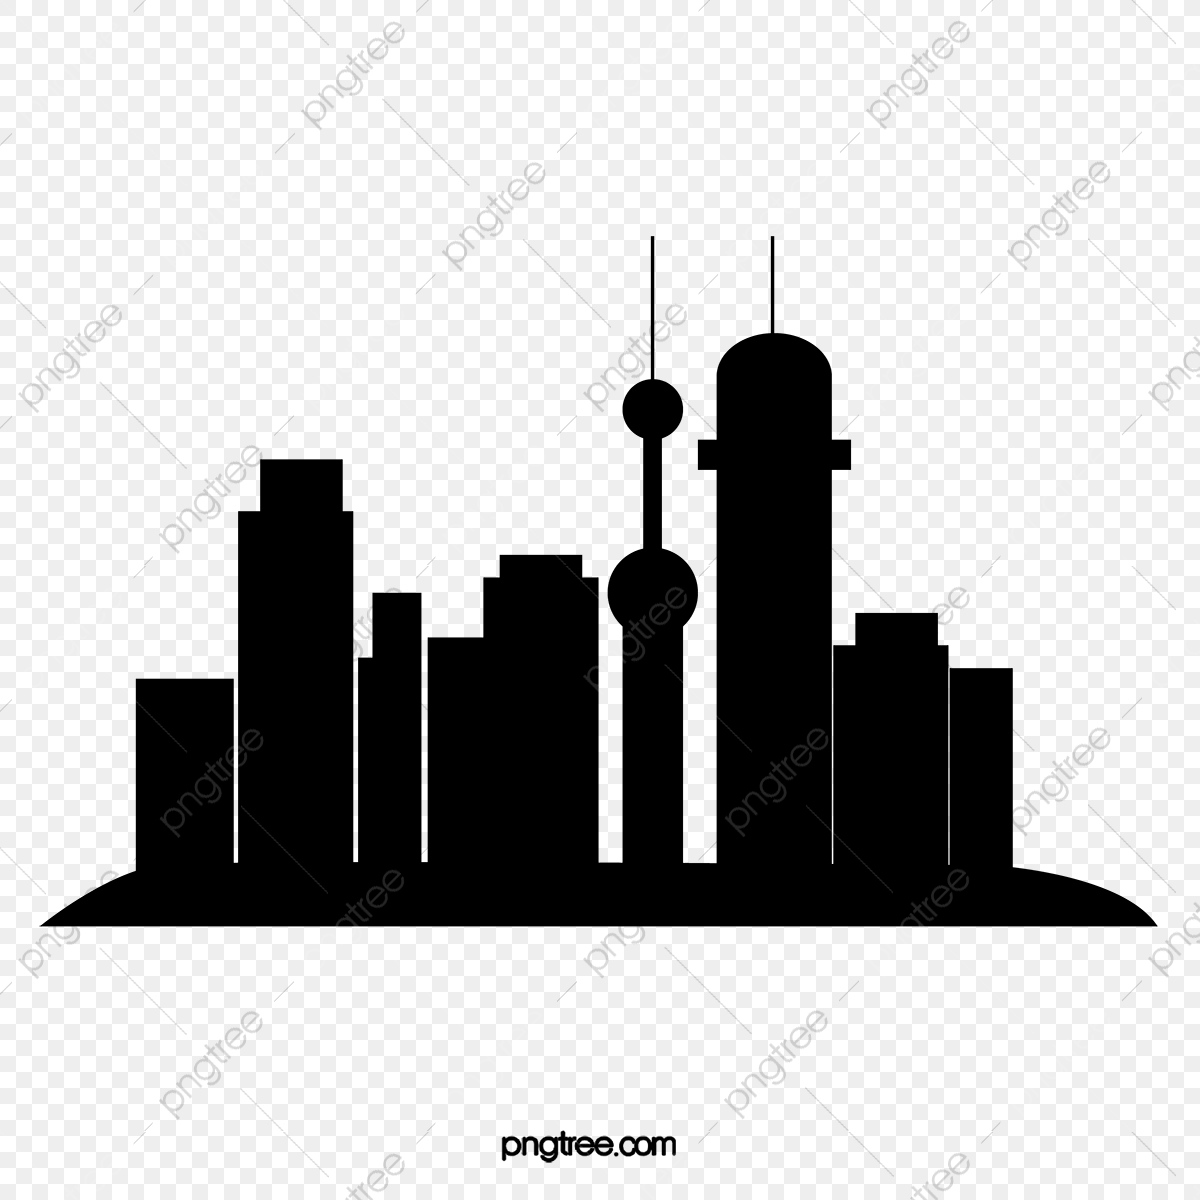 Silhouette Of City Building, Silhouette Vector, City Vector.